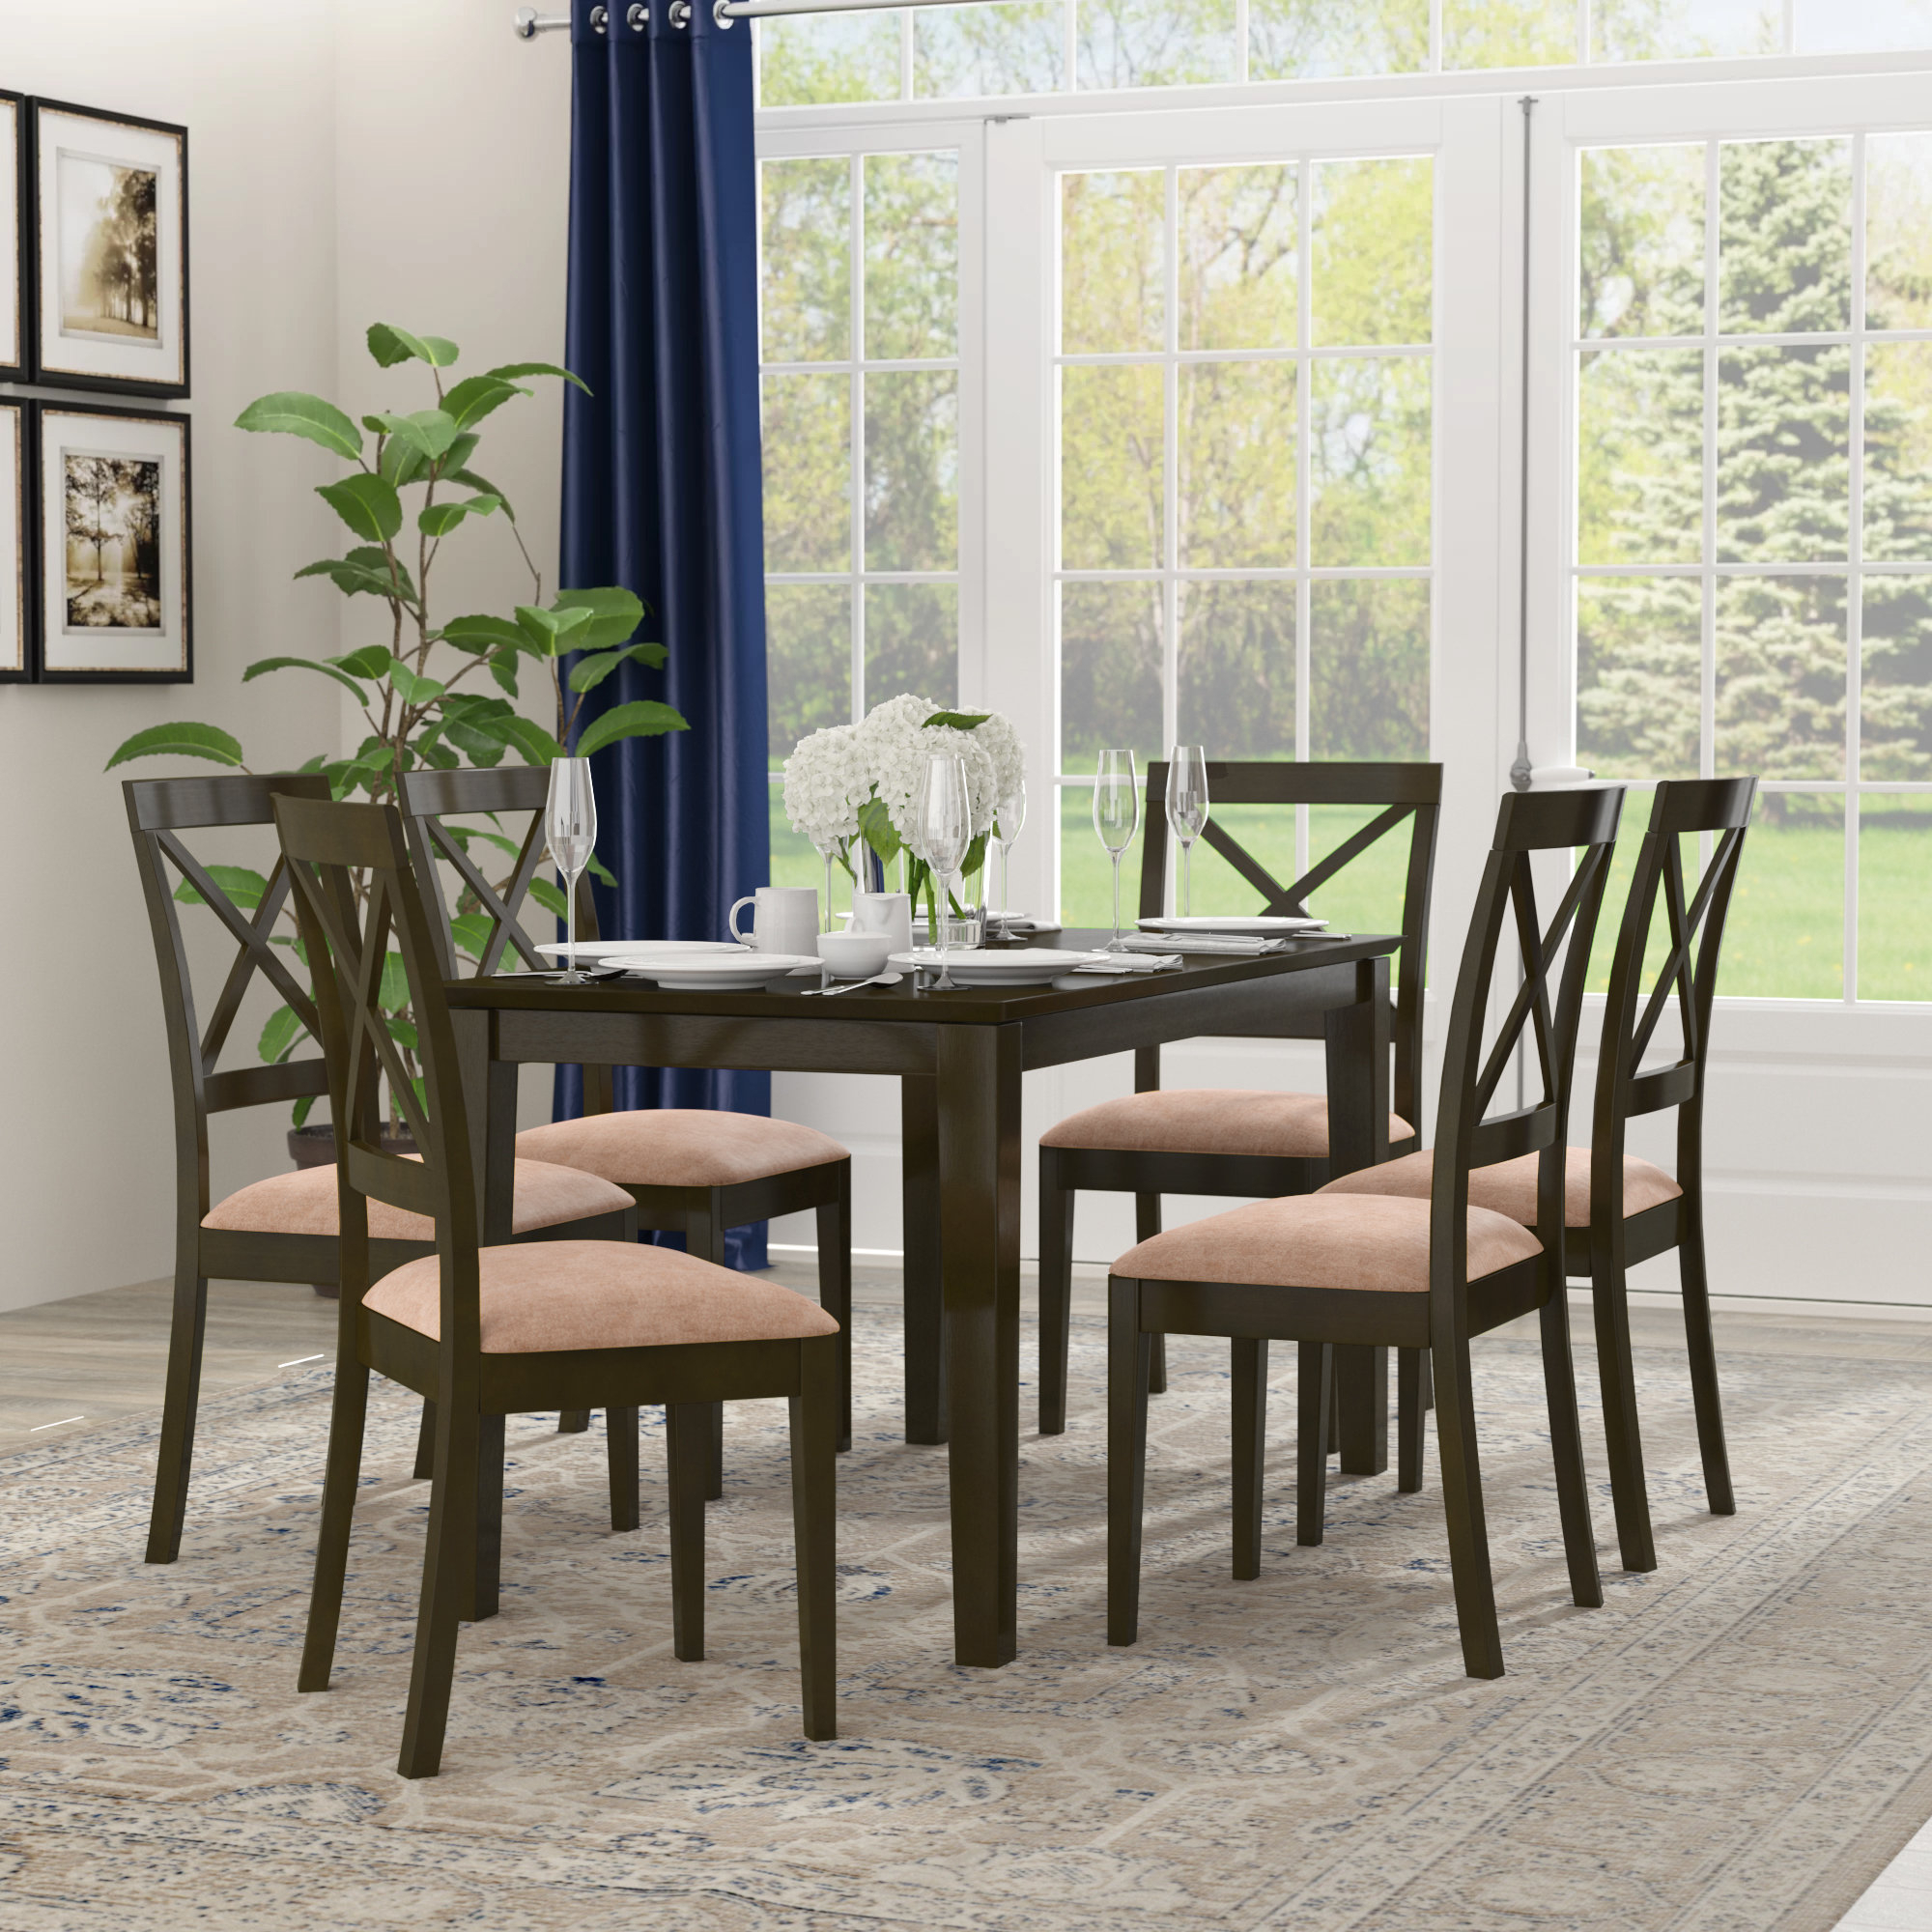 Smyrna Microfiber Upholstery 7 Piece Dining Set Within Most Recently Released Smyrna 3 Piece Dining Sets (View 3 of 20)